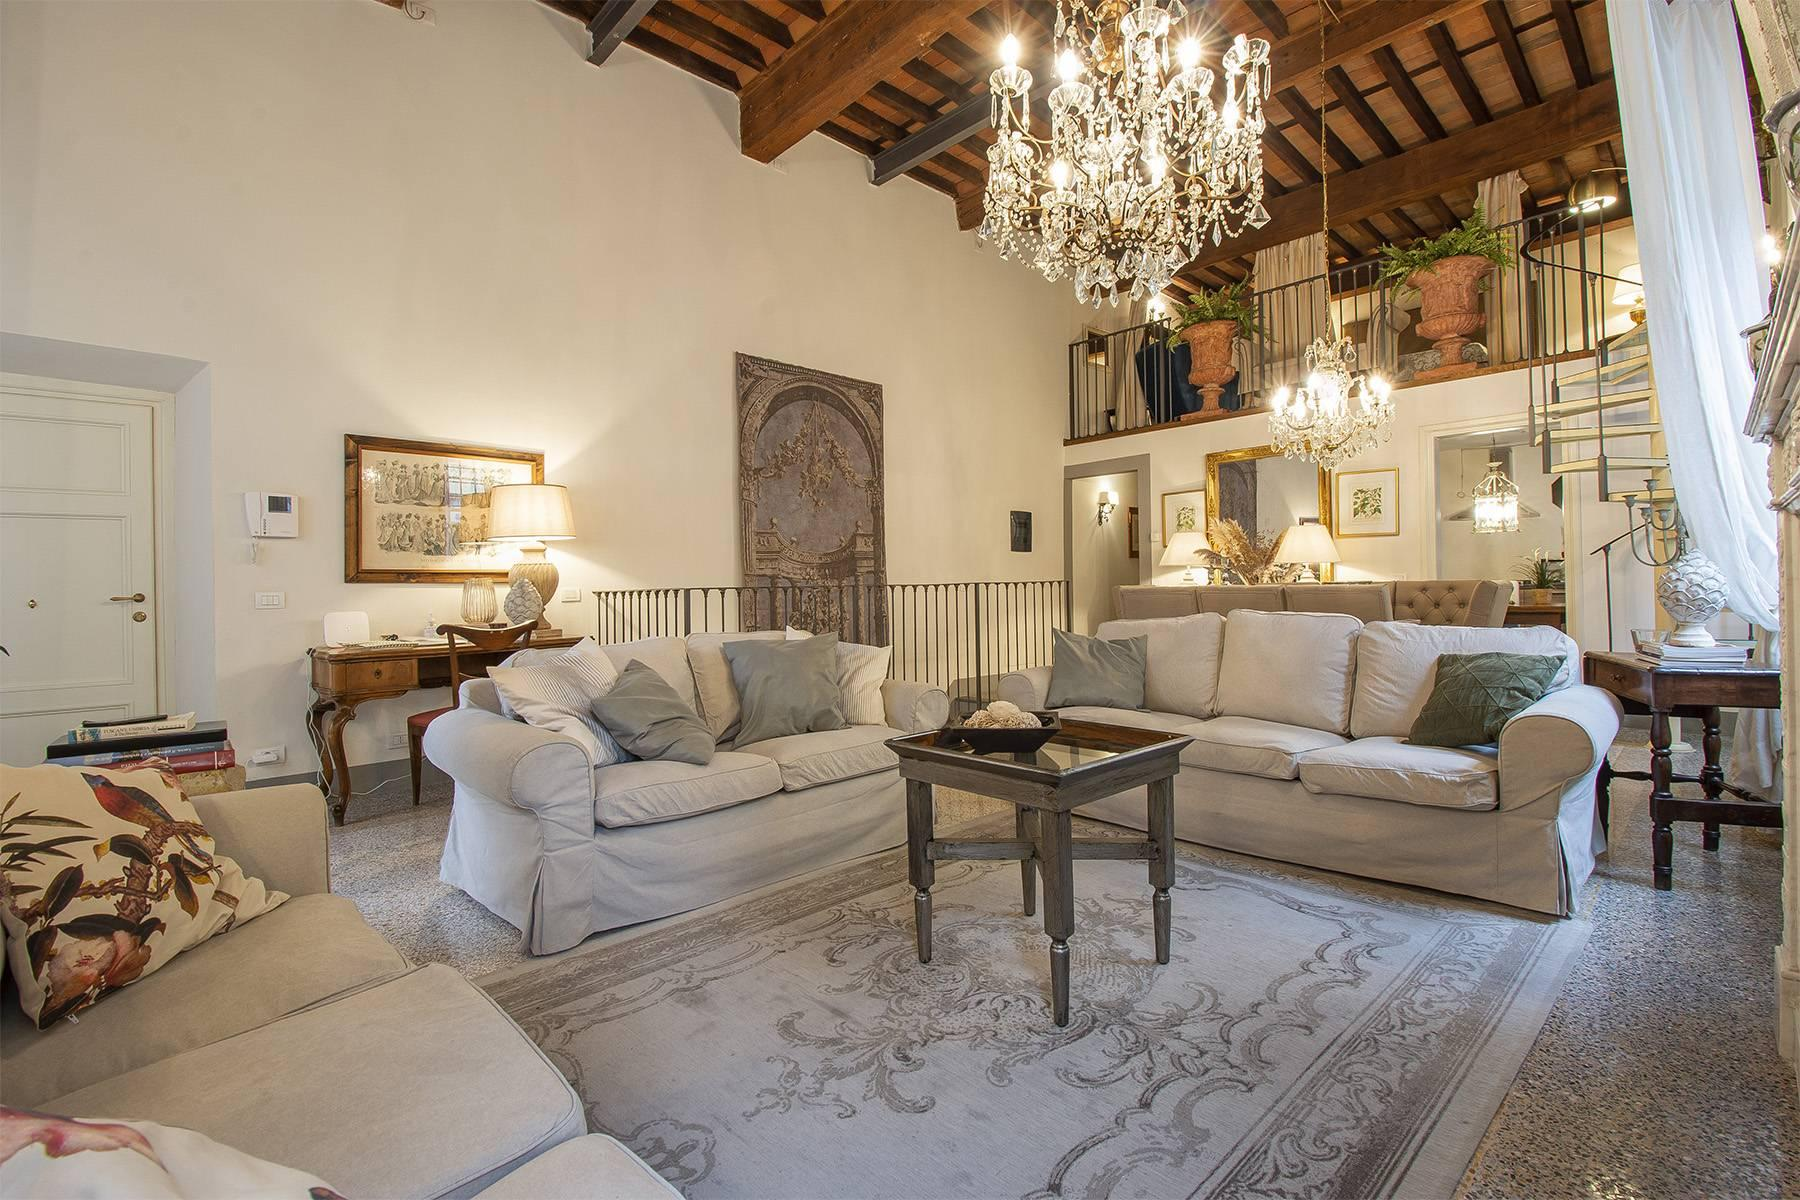 Exclusive apartment in the heart of Lucca - 1